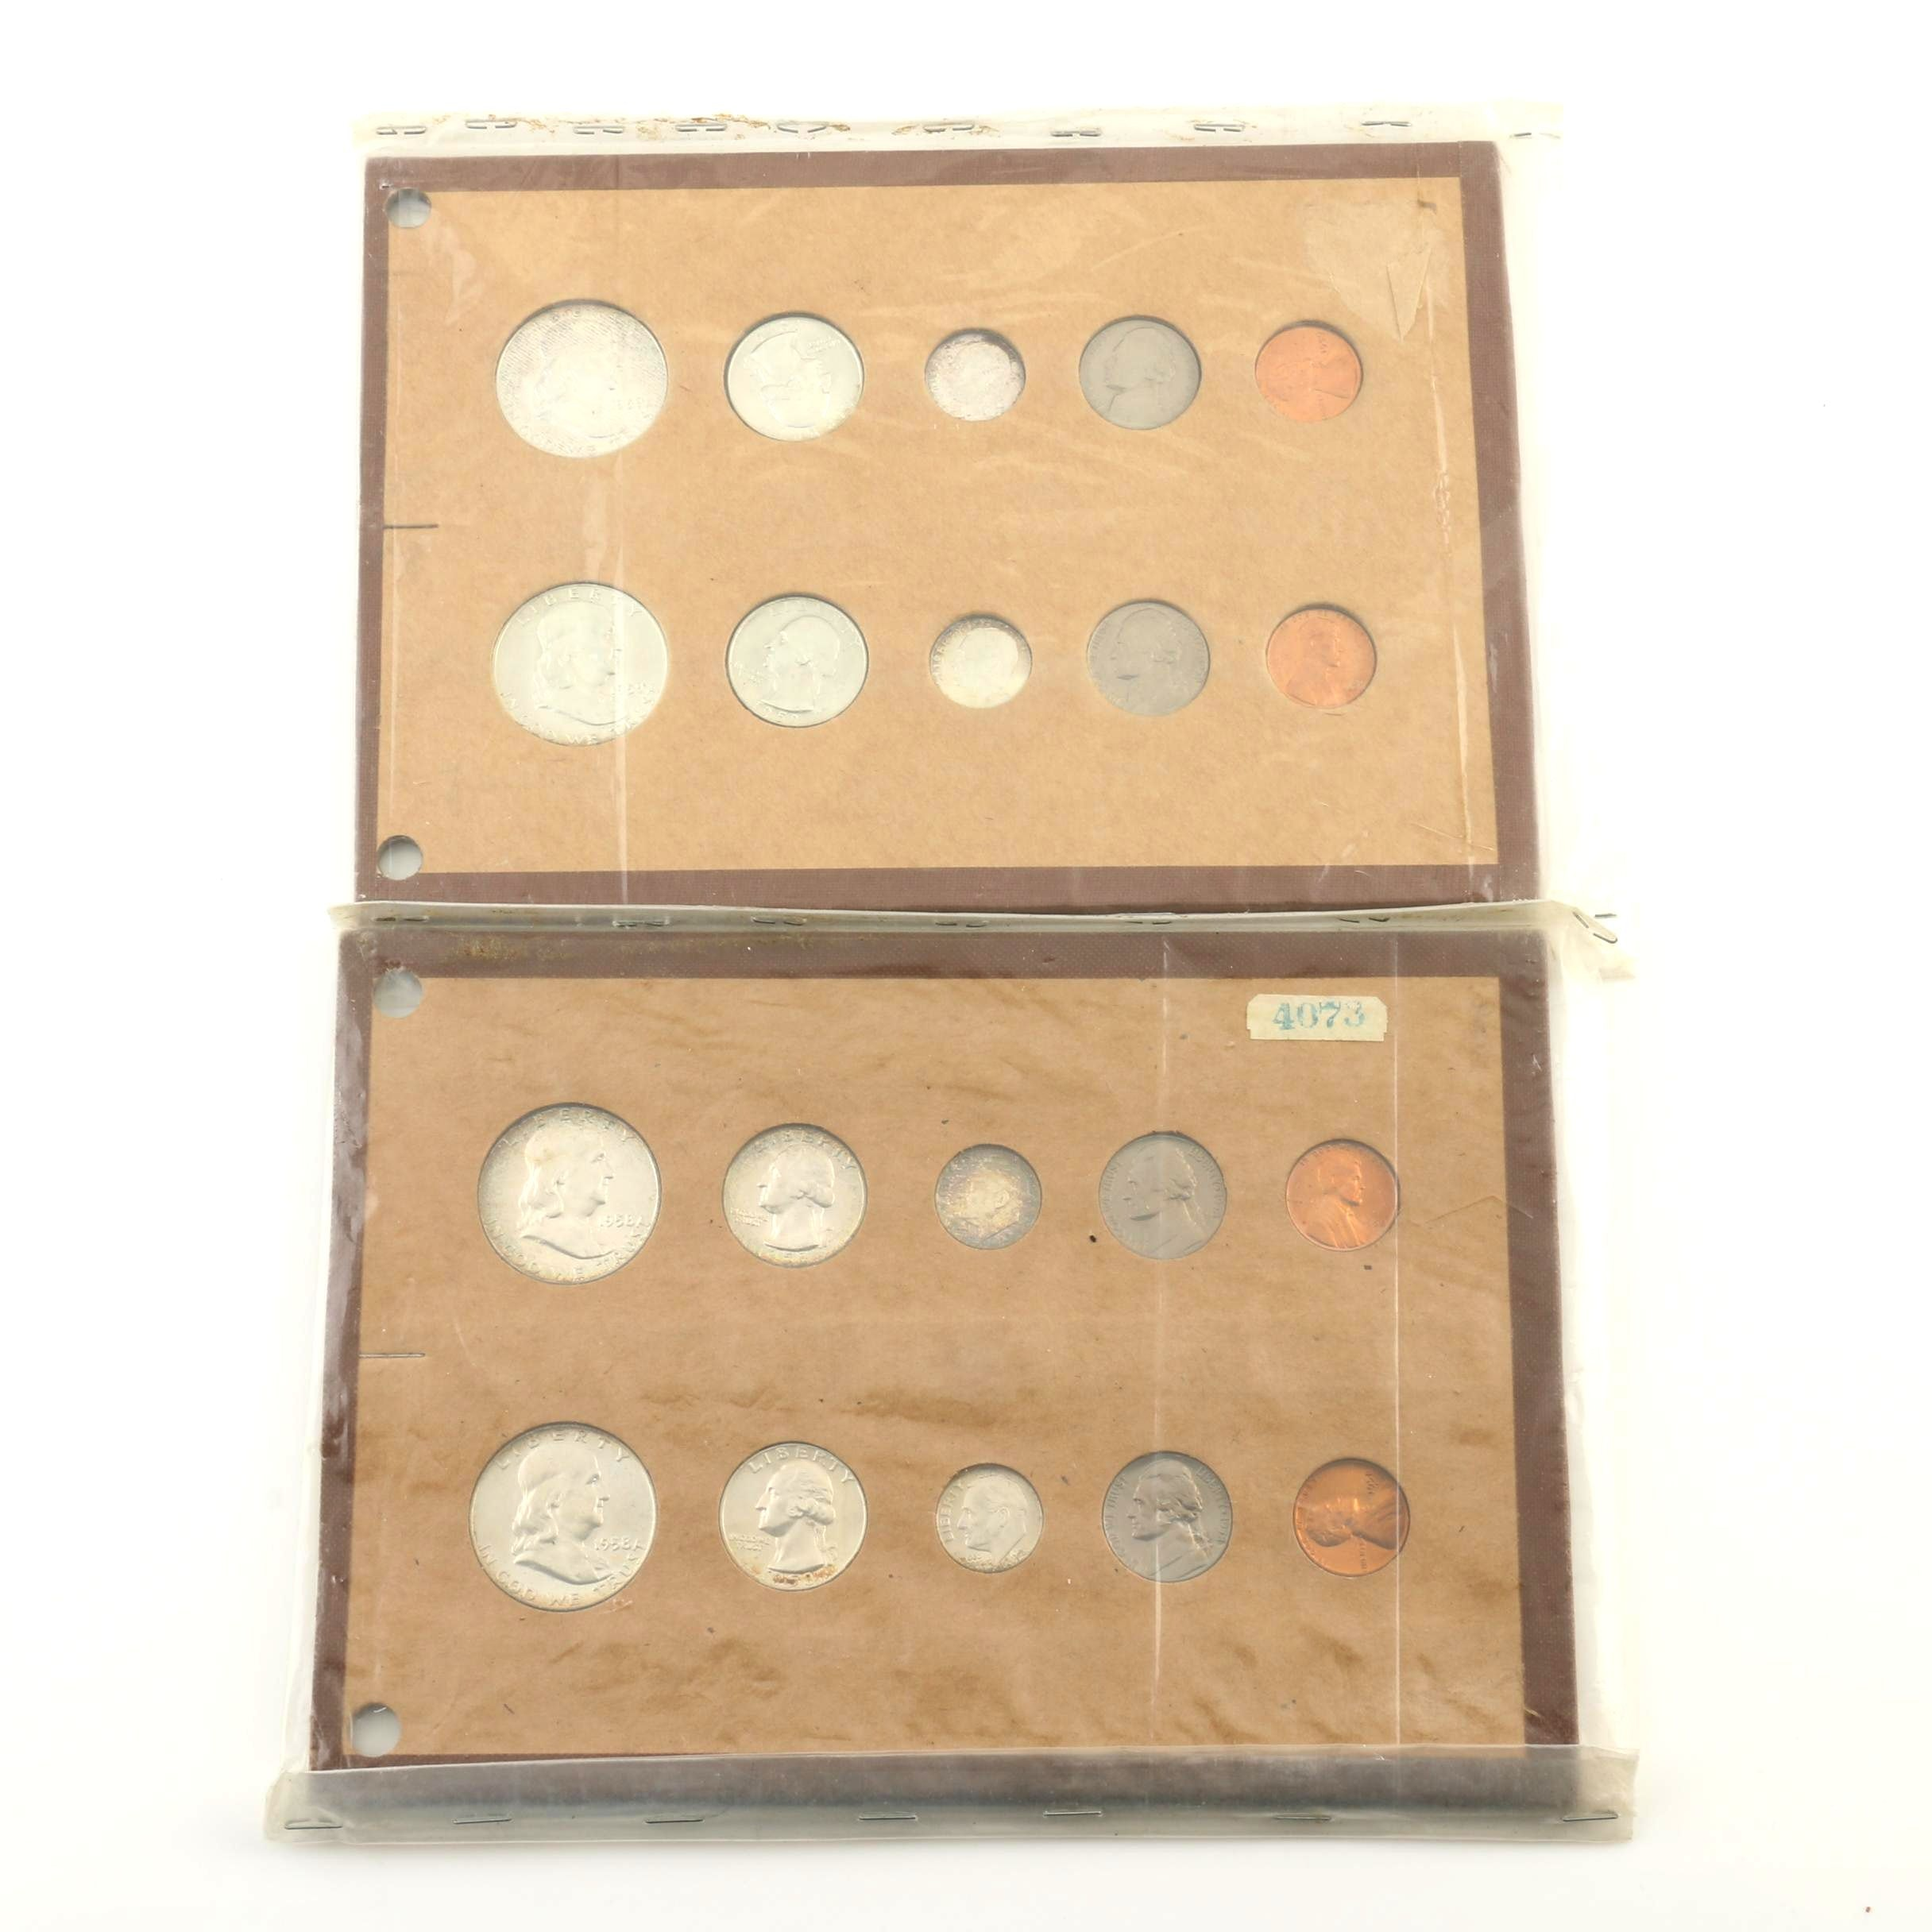 1958 and 1959 Coin Sets